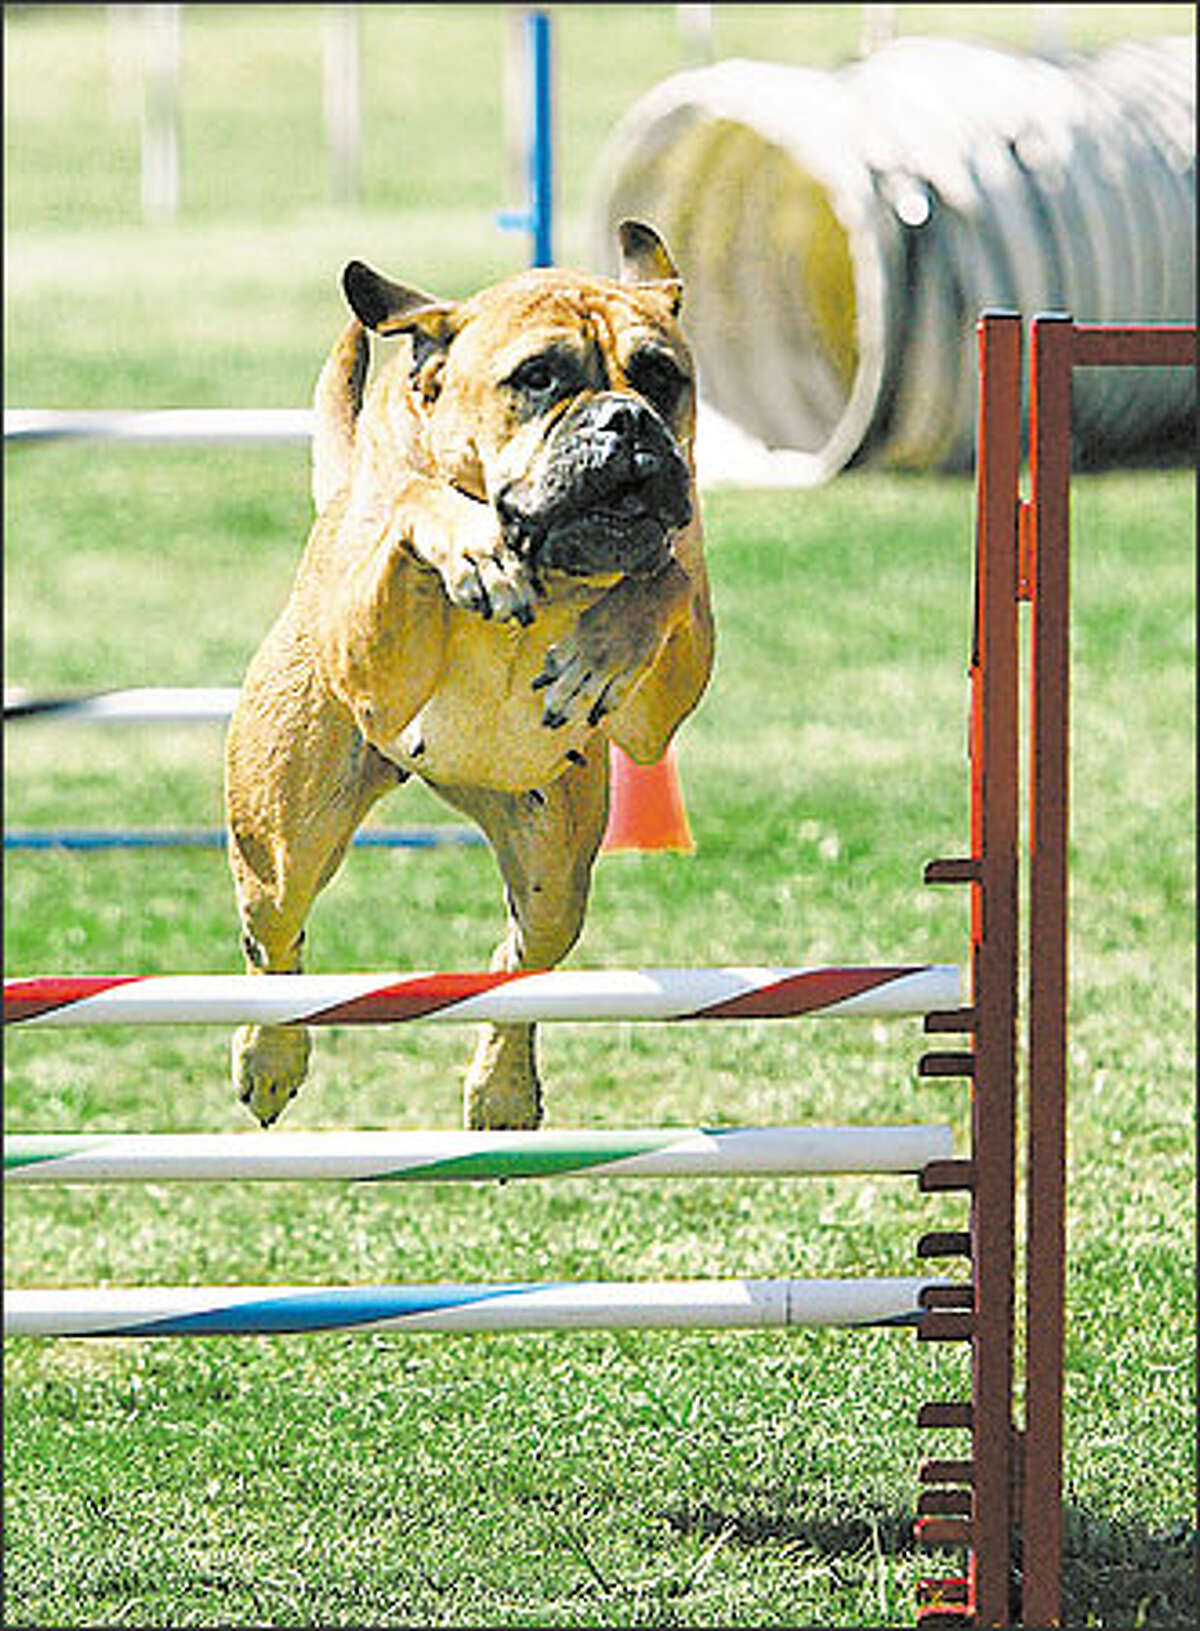 Truedee, a bull mastiff, jumps over a hurdle while competing in an agility trial with owner Melissa Wiltse of Monroe, during the competition.